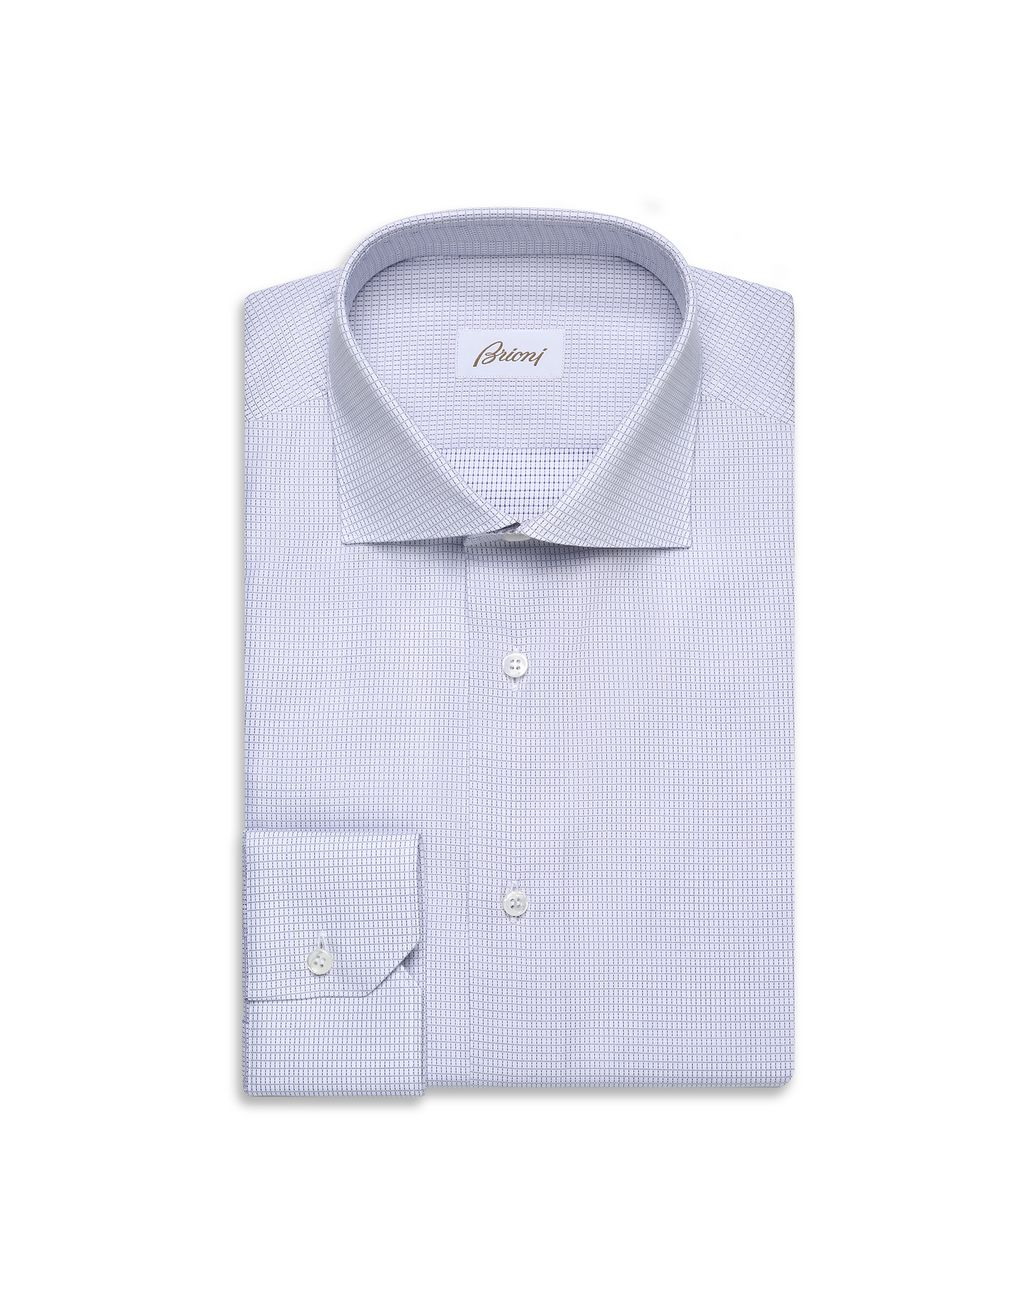 BRIONI Bluette and White Micro-Design Formal Shirt Formal shirt Man f